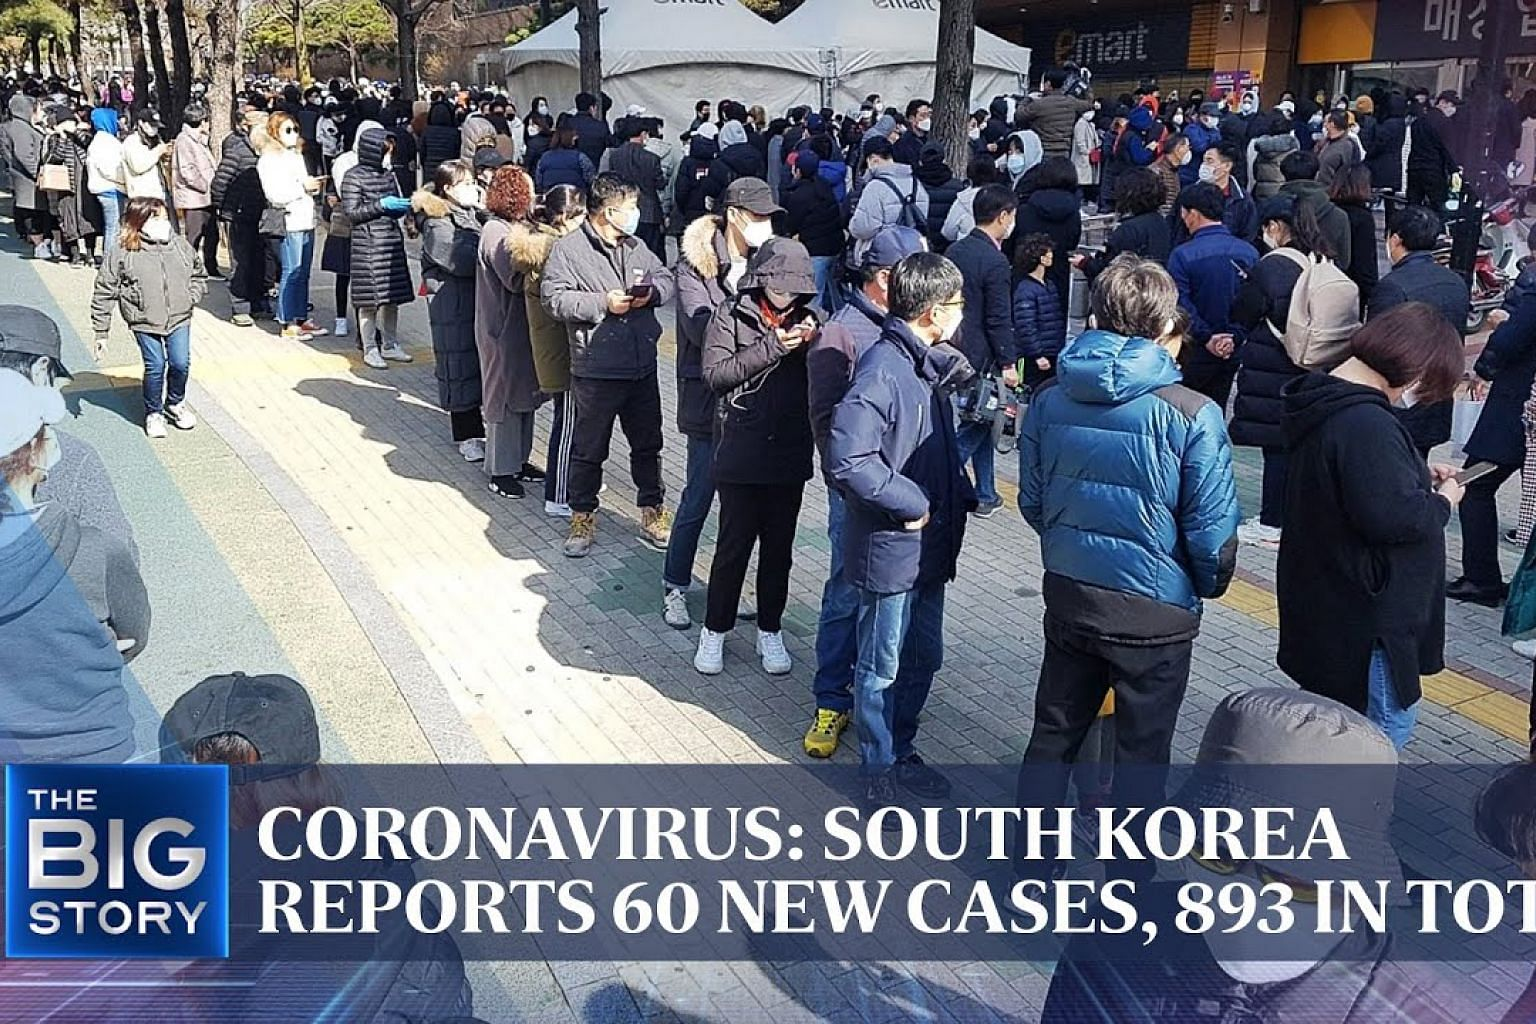 Coronavirus: South Korea reports 60 new cases, 893 in total | THE BIG STORY | The Straits Times